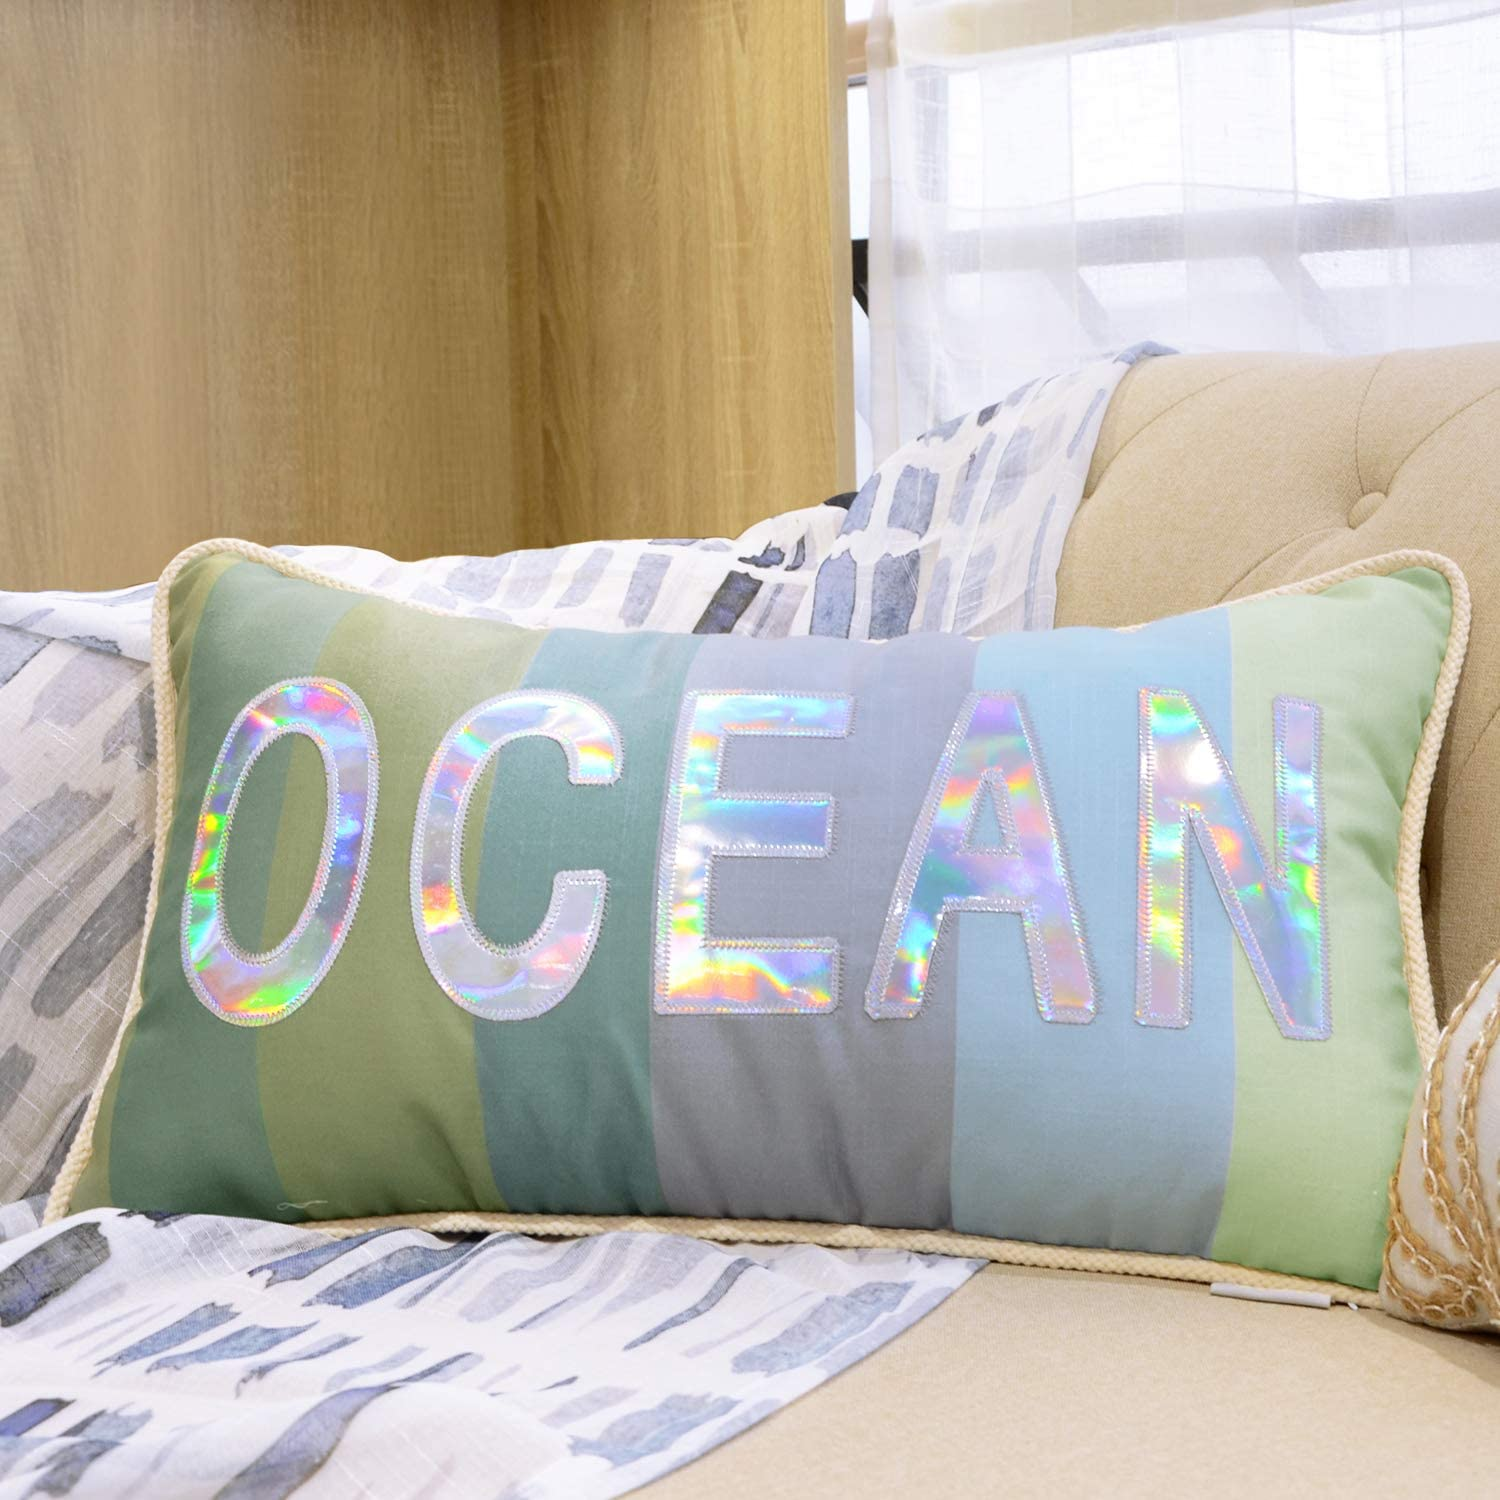 Hahadidi Marine Throw Pillow Cover 14 X 24 Inch 35x60cm With Unique Design Of Ocean Letters Laser Paste Cloth Embroidery Pillowcase No Pillow Insert For Sofa Couch 1piece Home Kitchen